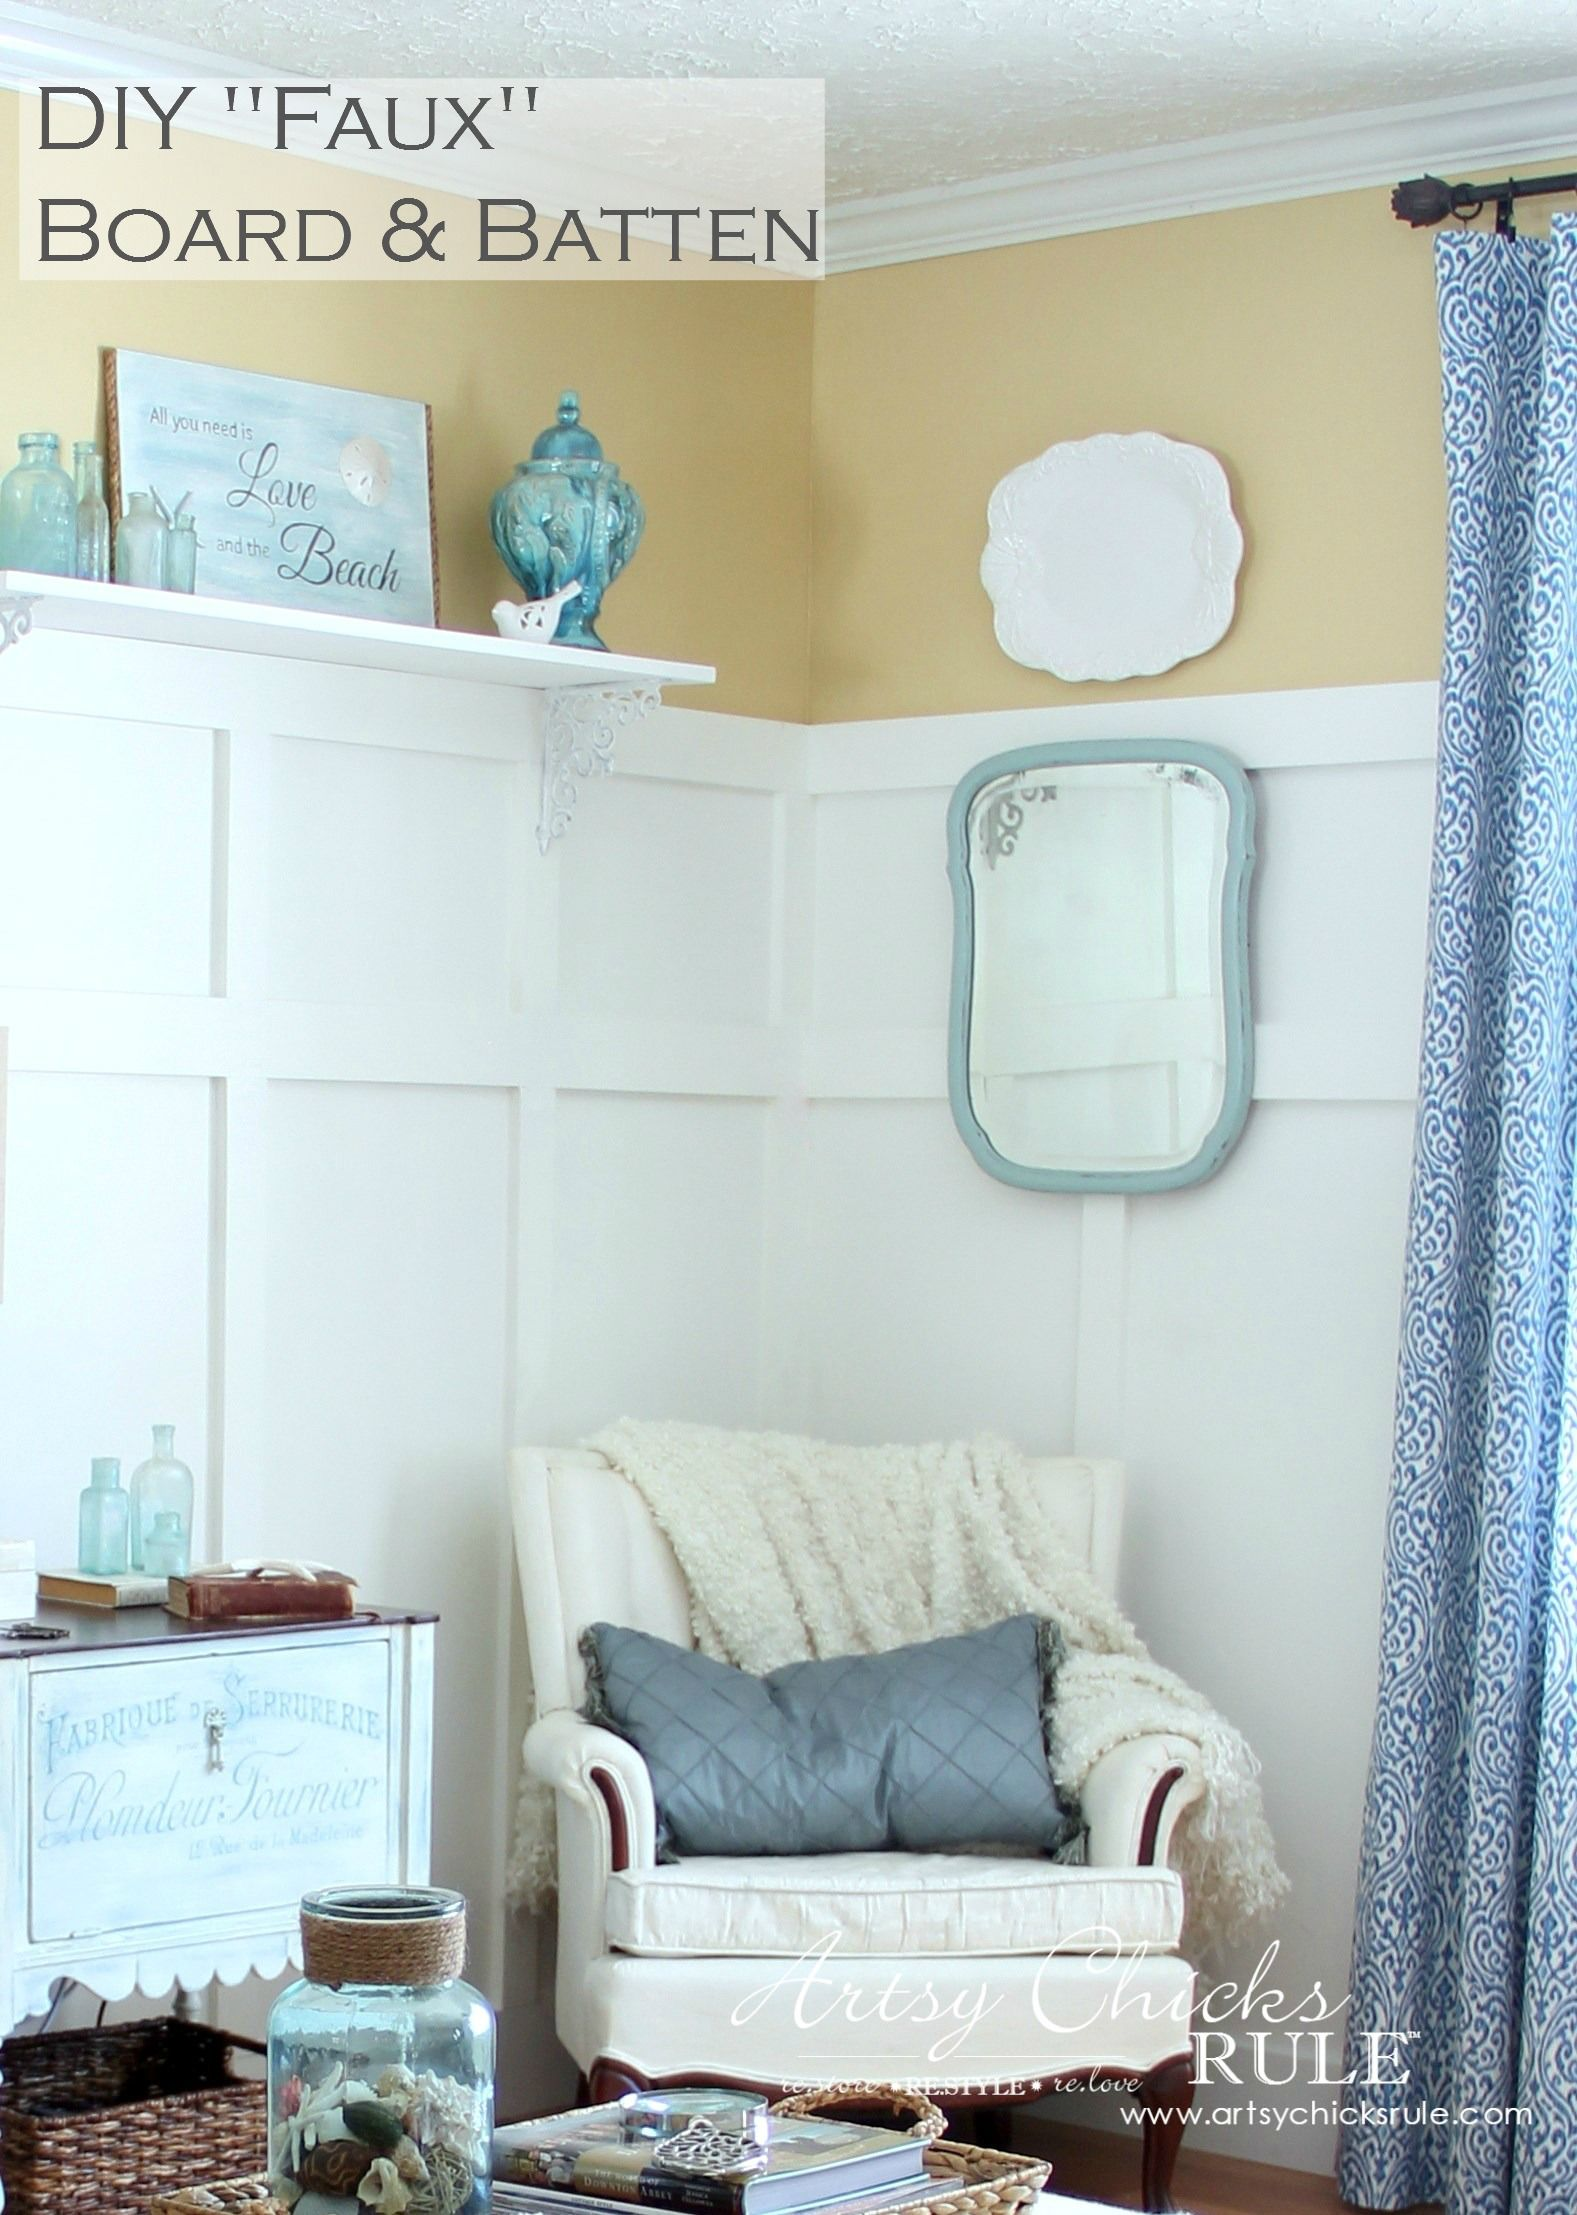 Create Board and Batten the easy way...FAUX! Just batten but with the look of both.